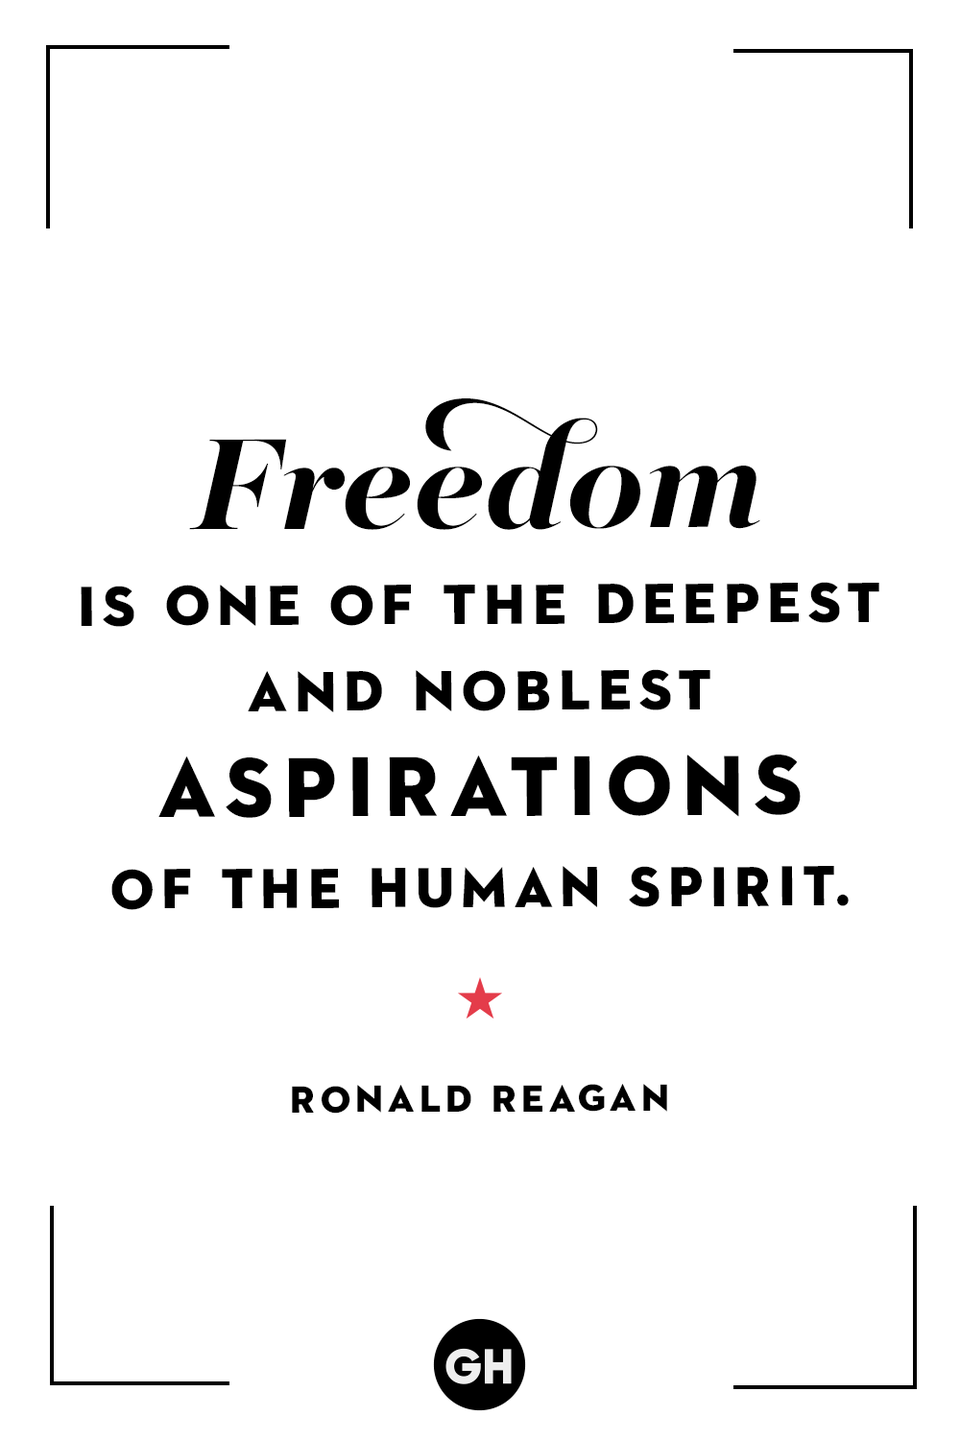 <p>Freedom is one of the deepest and noblest aspirations of the human spirit.</p>